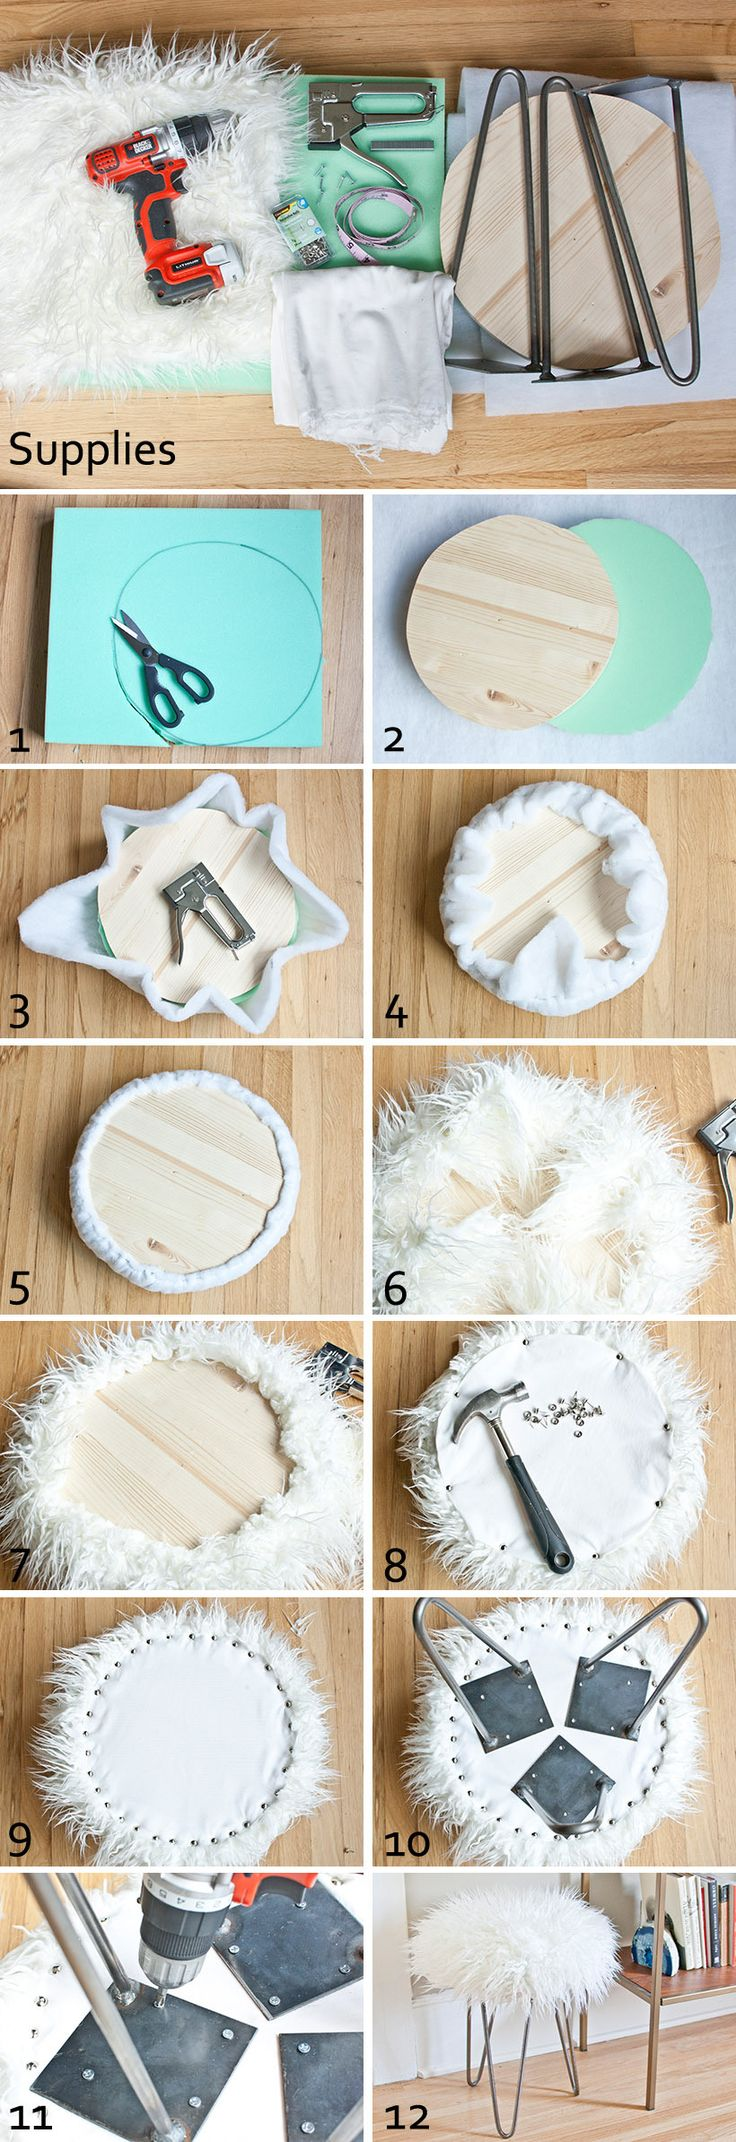 Make a Faux Fur Stool with Hairpin Legs | Transient Expression